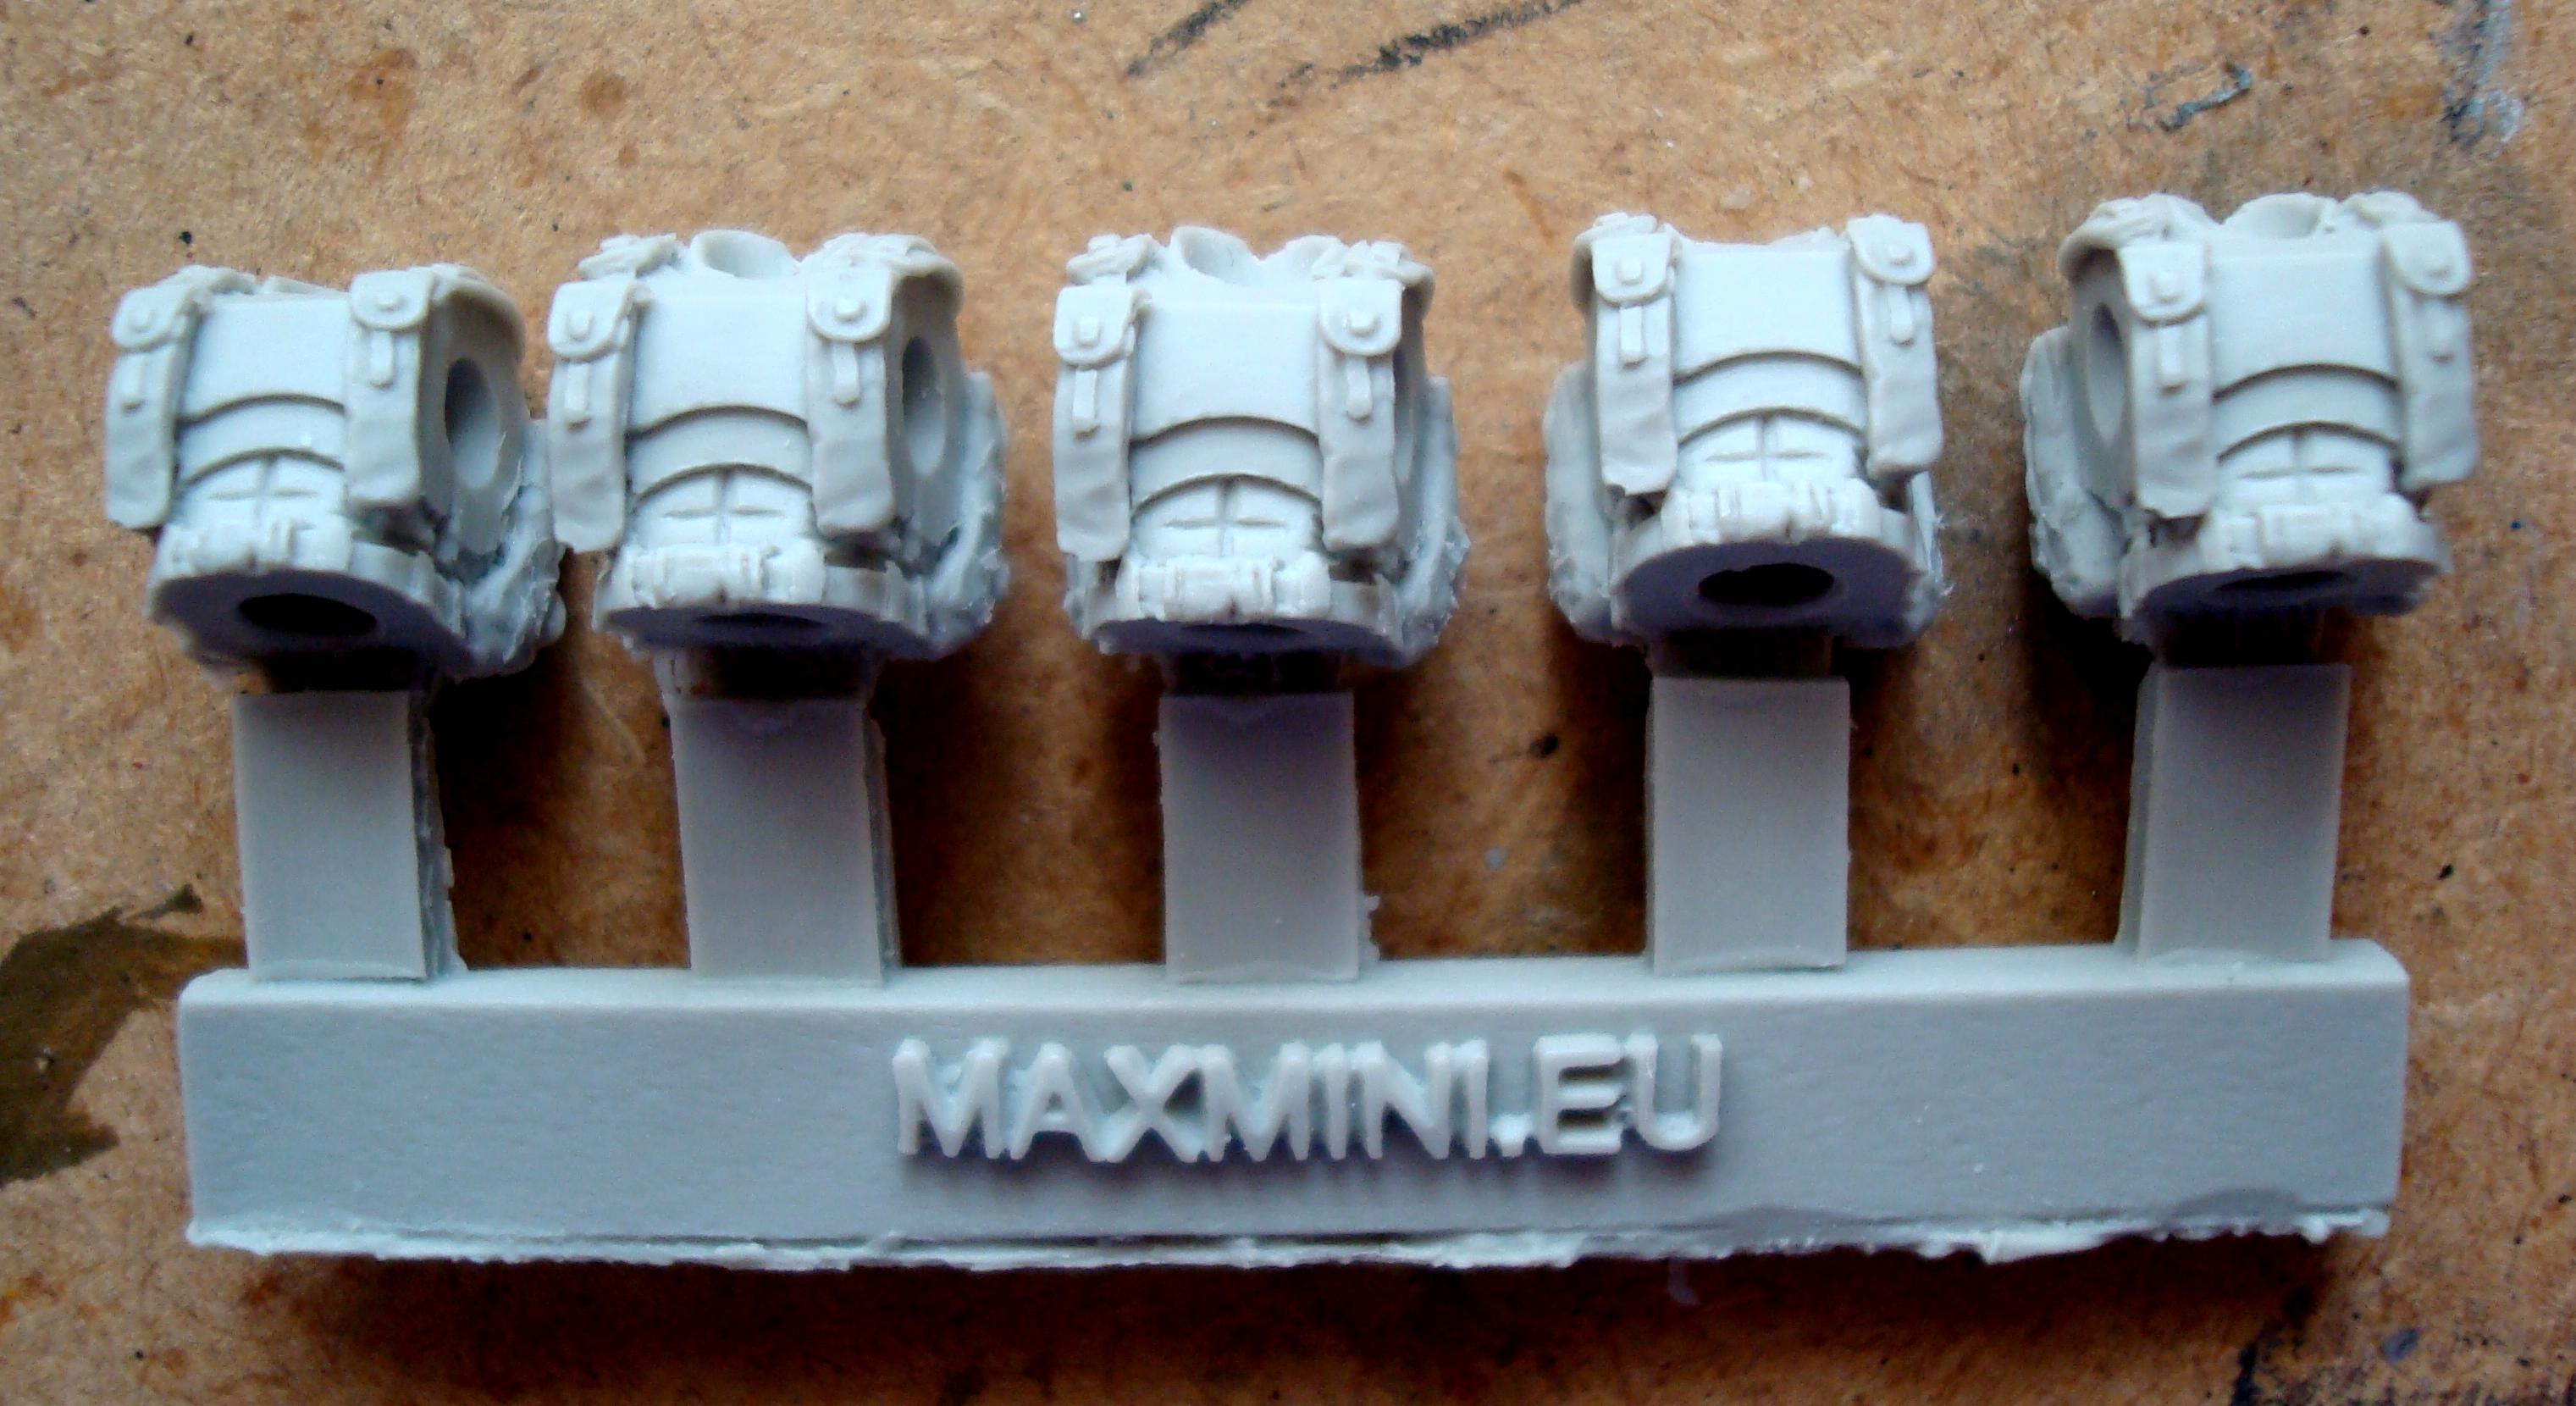 Imperial Guard, Maxmini